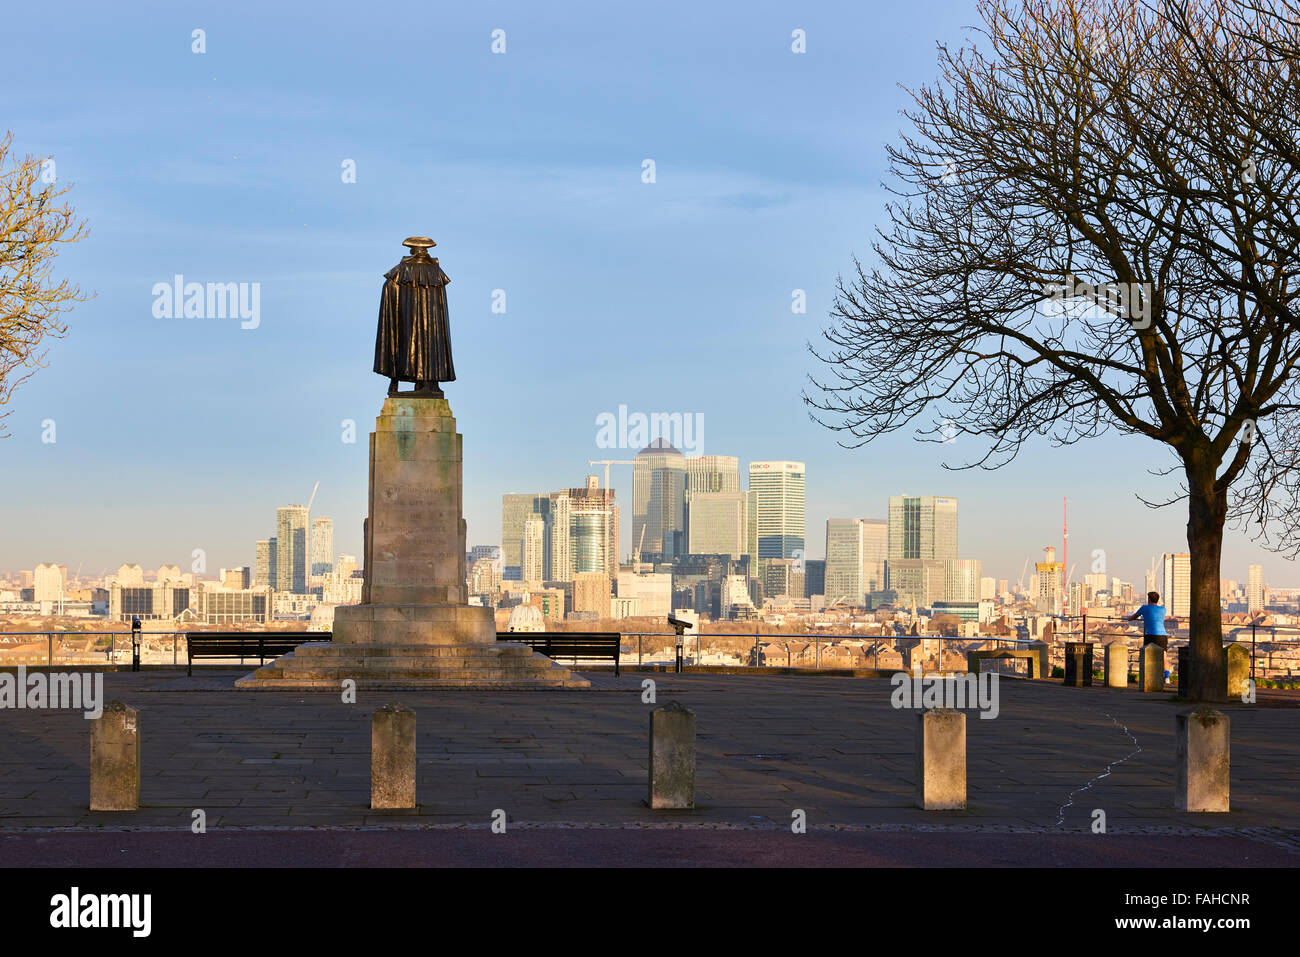 LONDON, UK - DECEMBER 28: Statue of James Wolfe at Greenwich viewpoint overlooking Canary Wharf bank buildings. - Stock Image